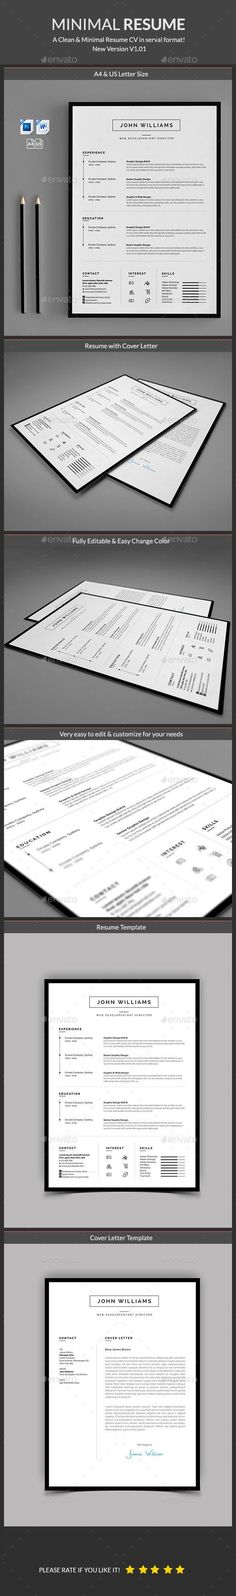 #Resume - Resumes Stationery Downolad here: https://graphicriver.net/item/resume/18528474?ref=classicdesignp